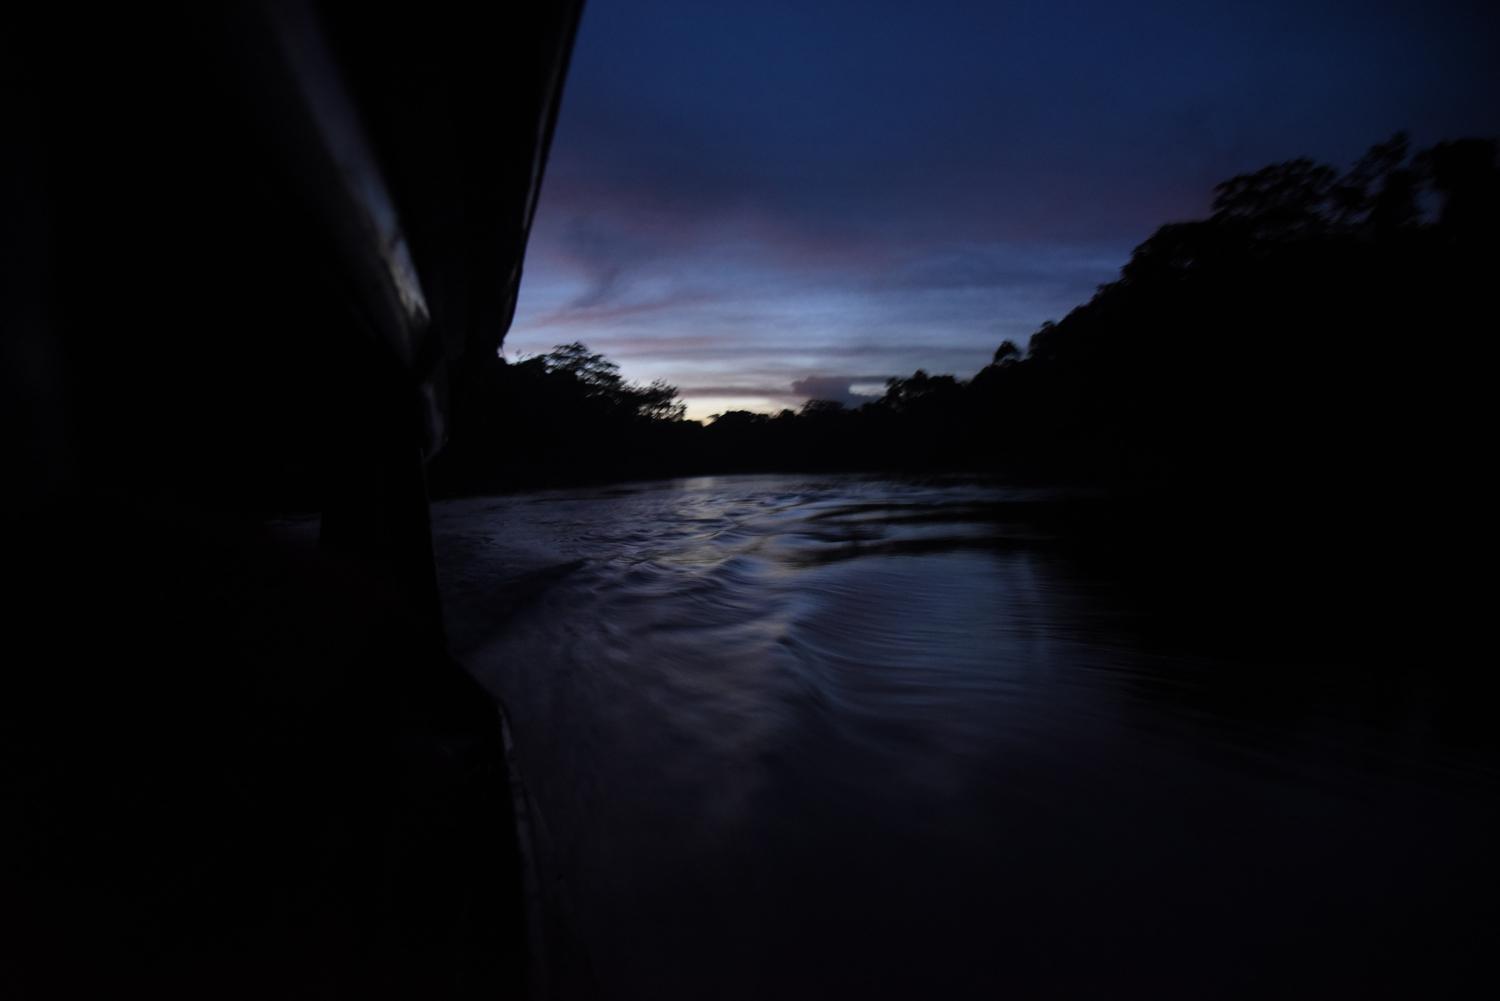 Boat driver, Manfred Cruz Zuvieta, navigates the last several hours of the journey to Pampas de Heath by night before arriving to camp across the river in Bolivia.